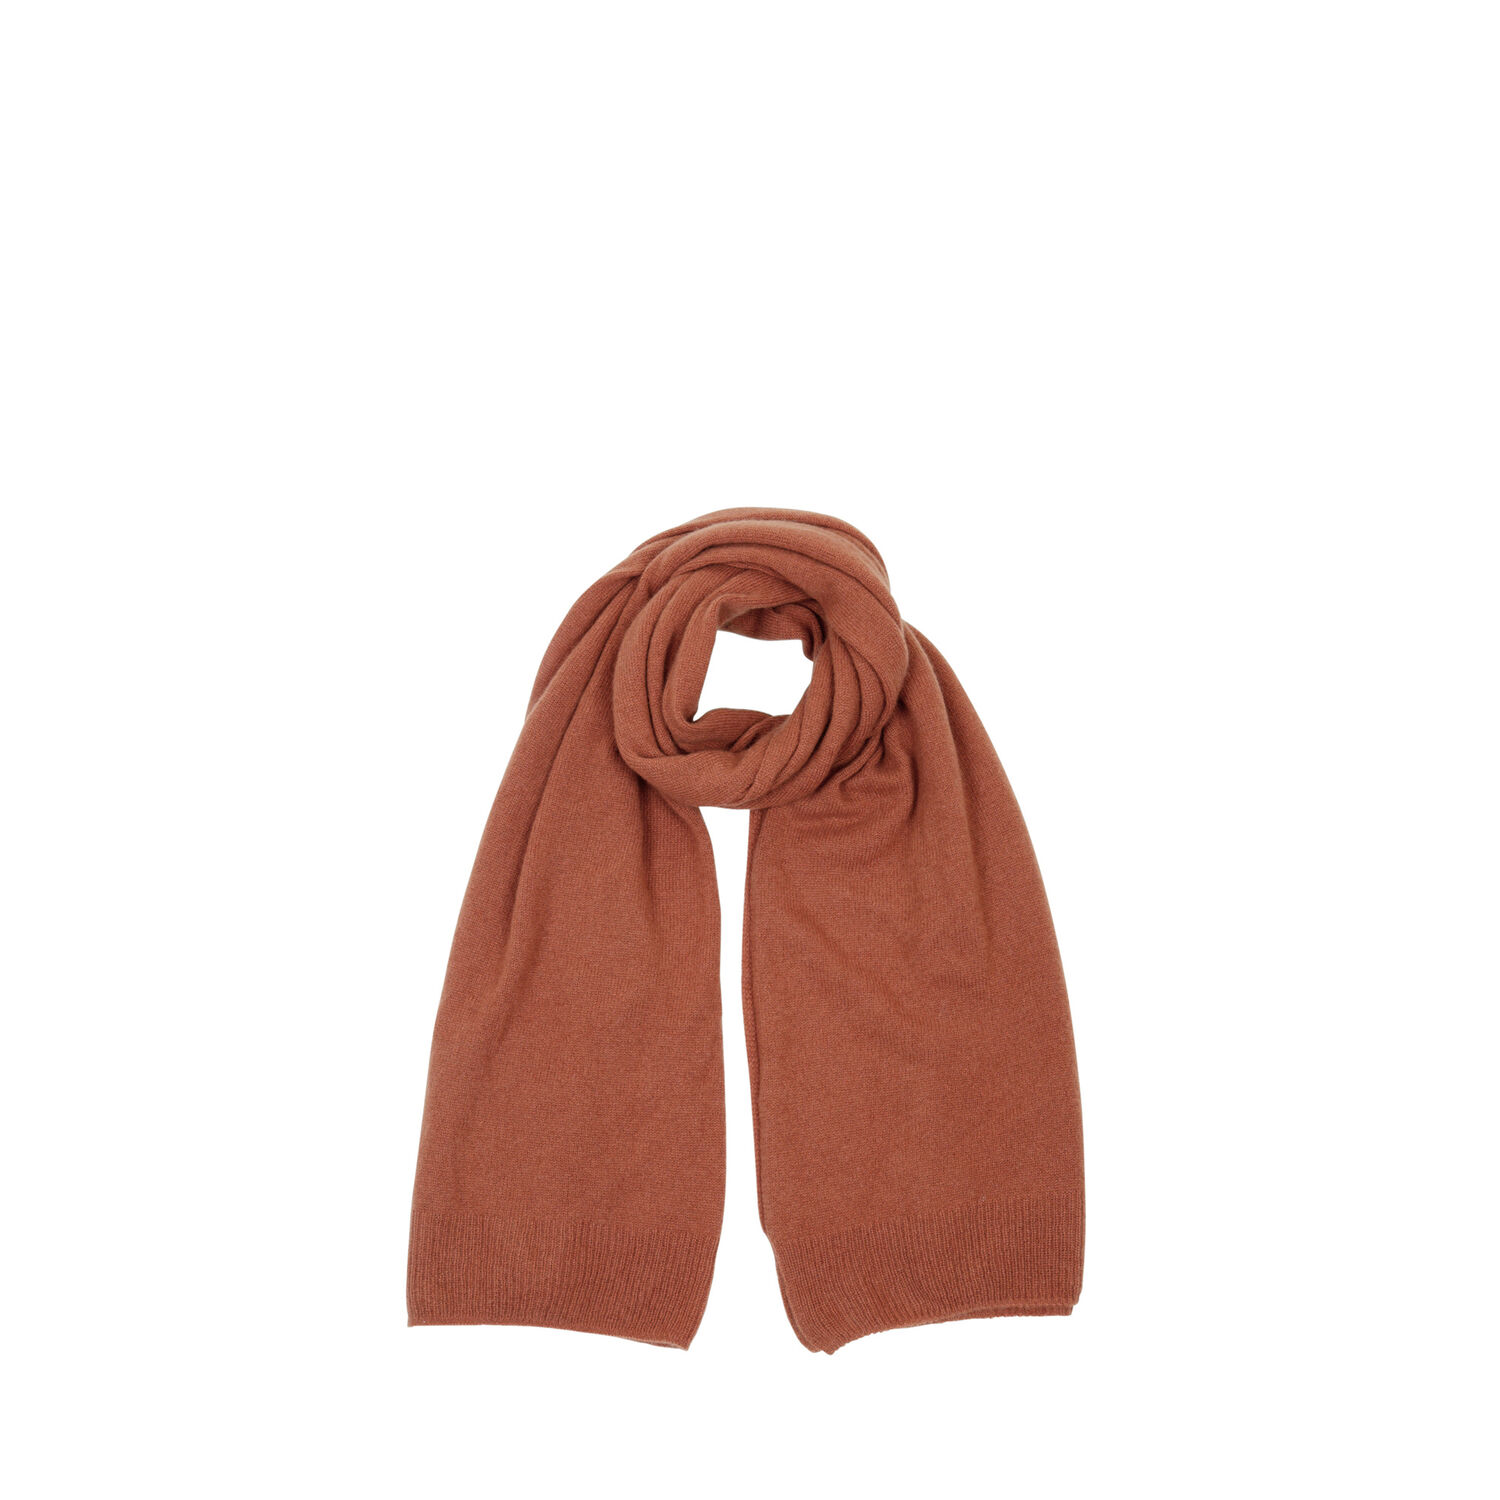 Warehouse, CASHMERE SCARF Brown 1